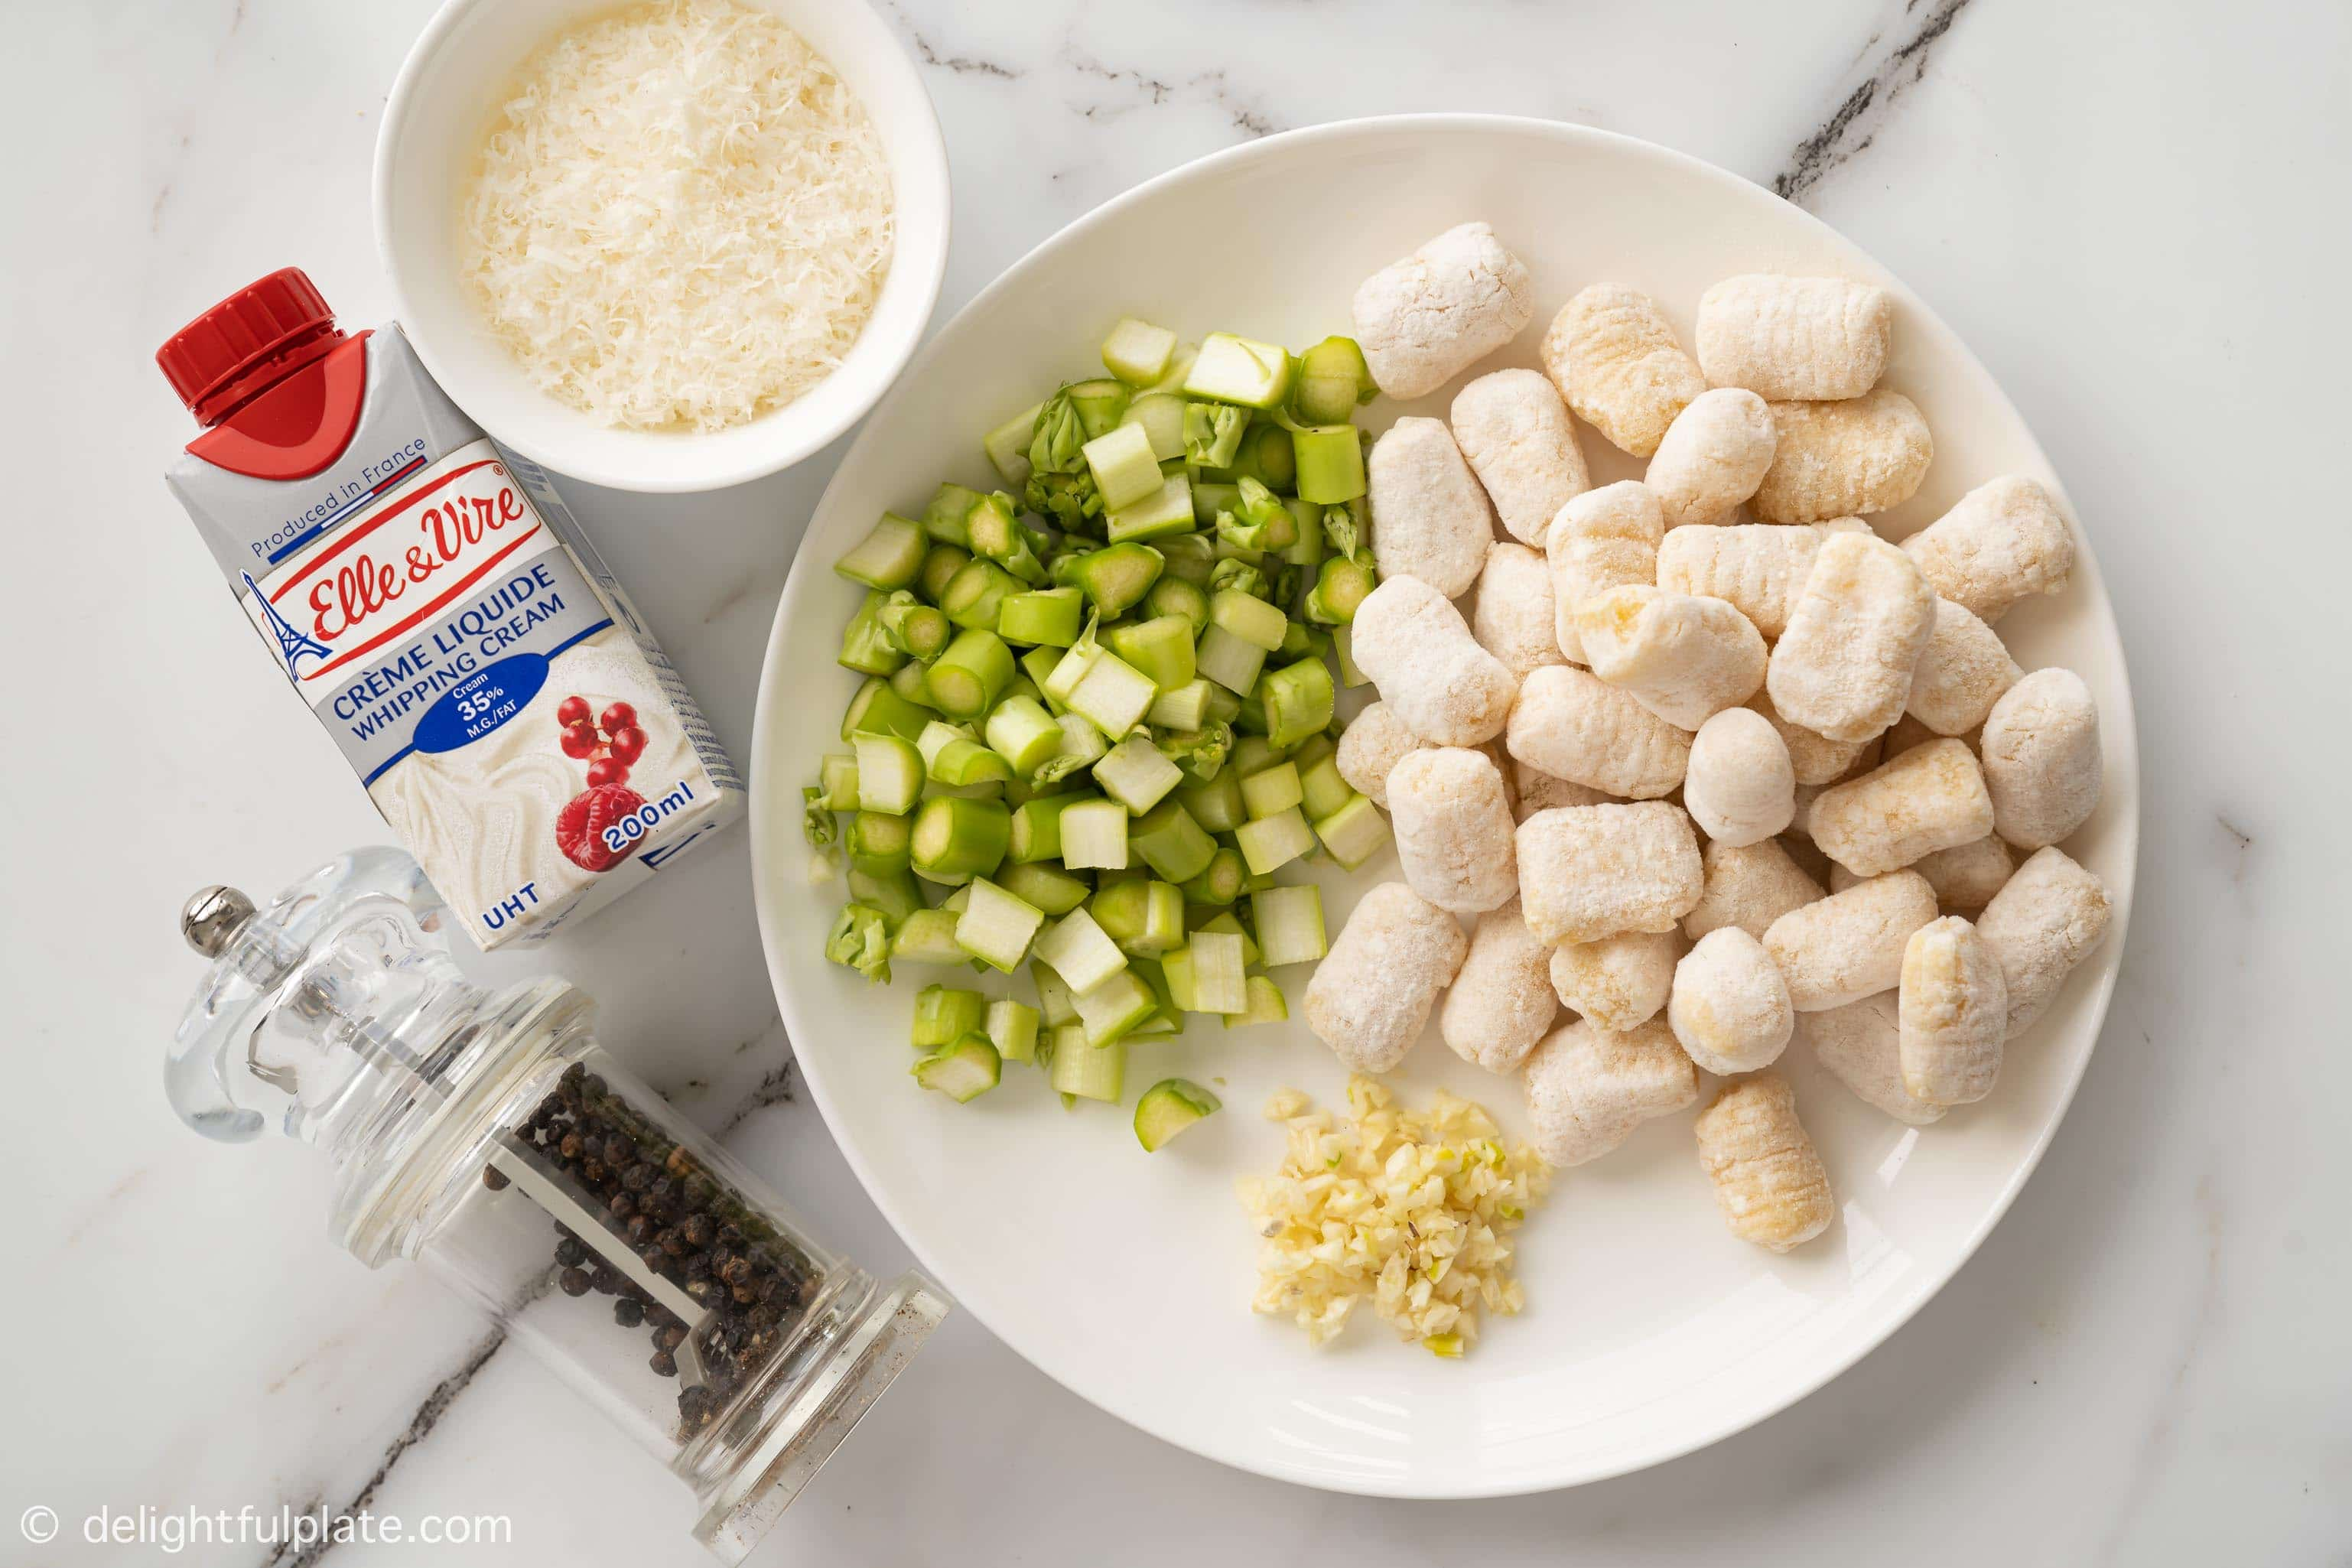 plates and bowls containing ingredients to make the dish: asparagus, gnocchi, garlic, parmesan, cream and black pepper